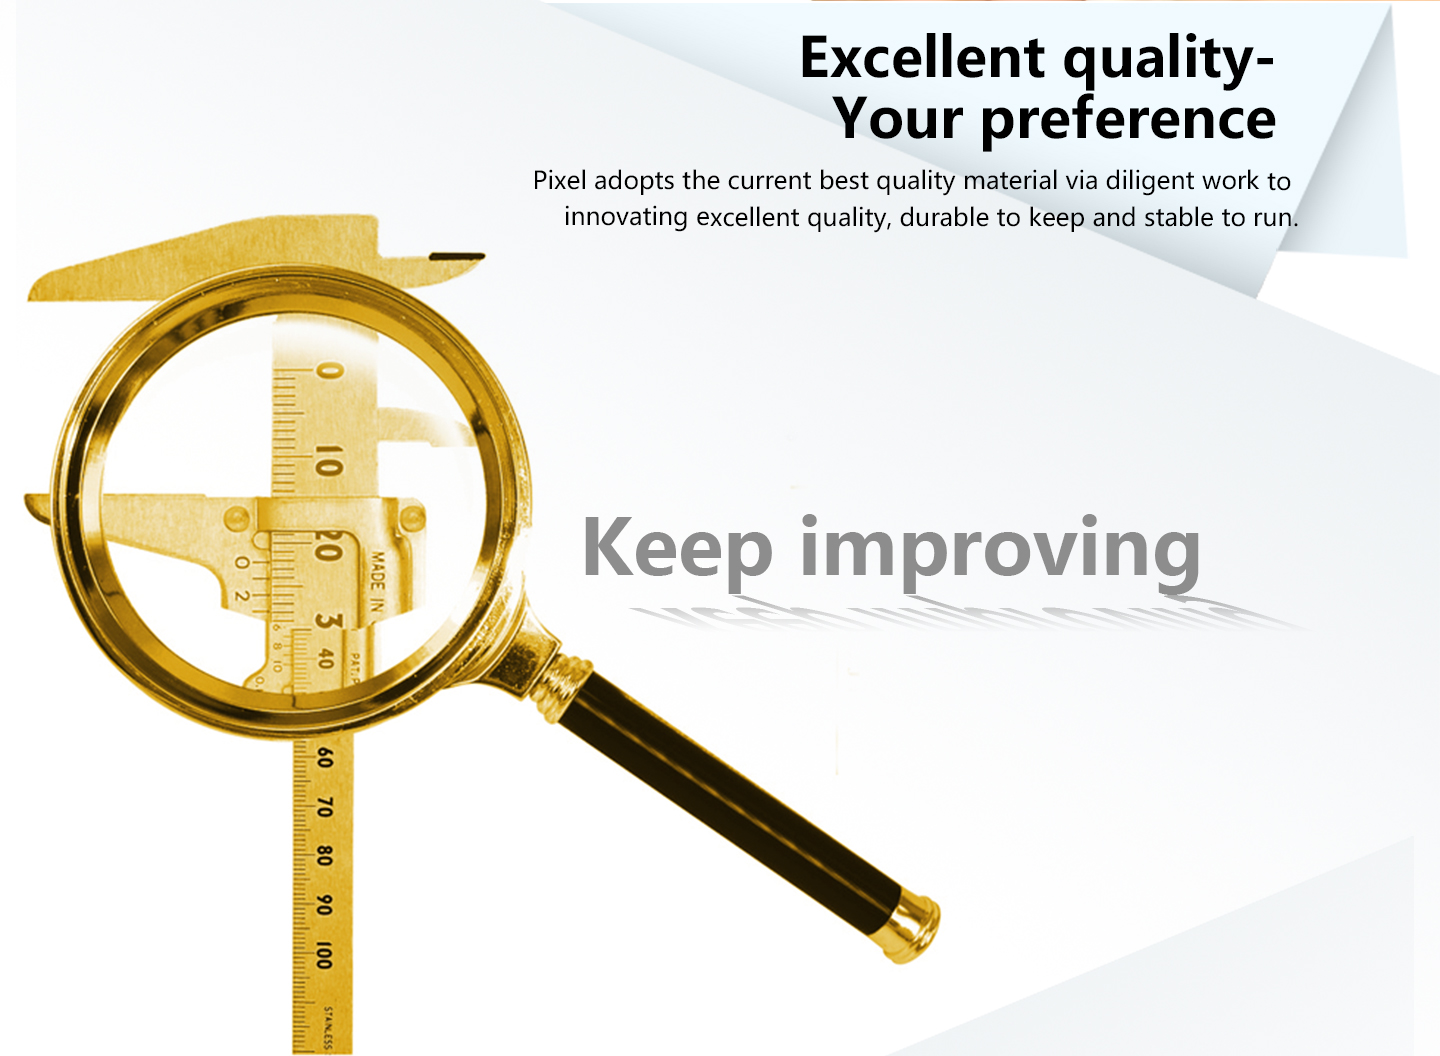 Excellent quality-Your preference